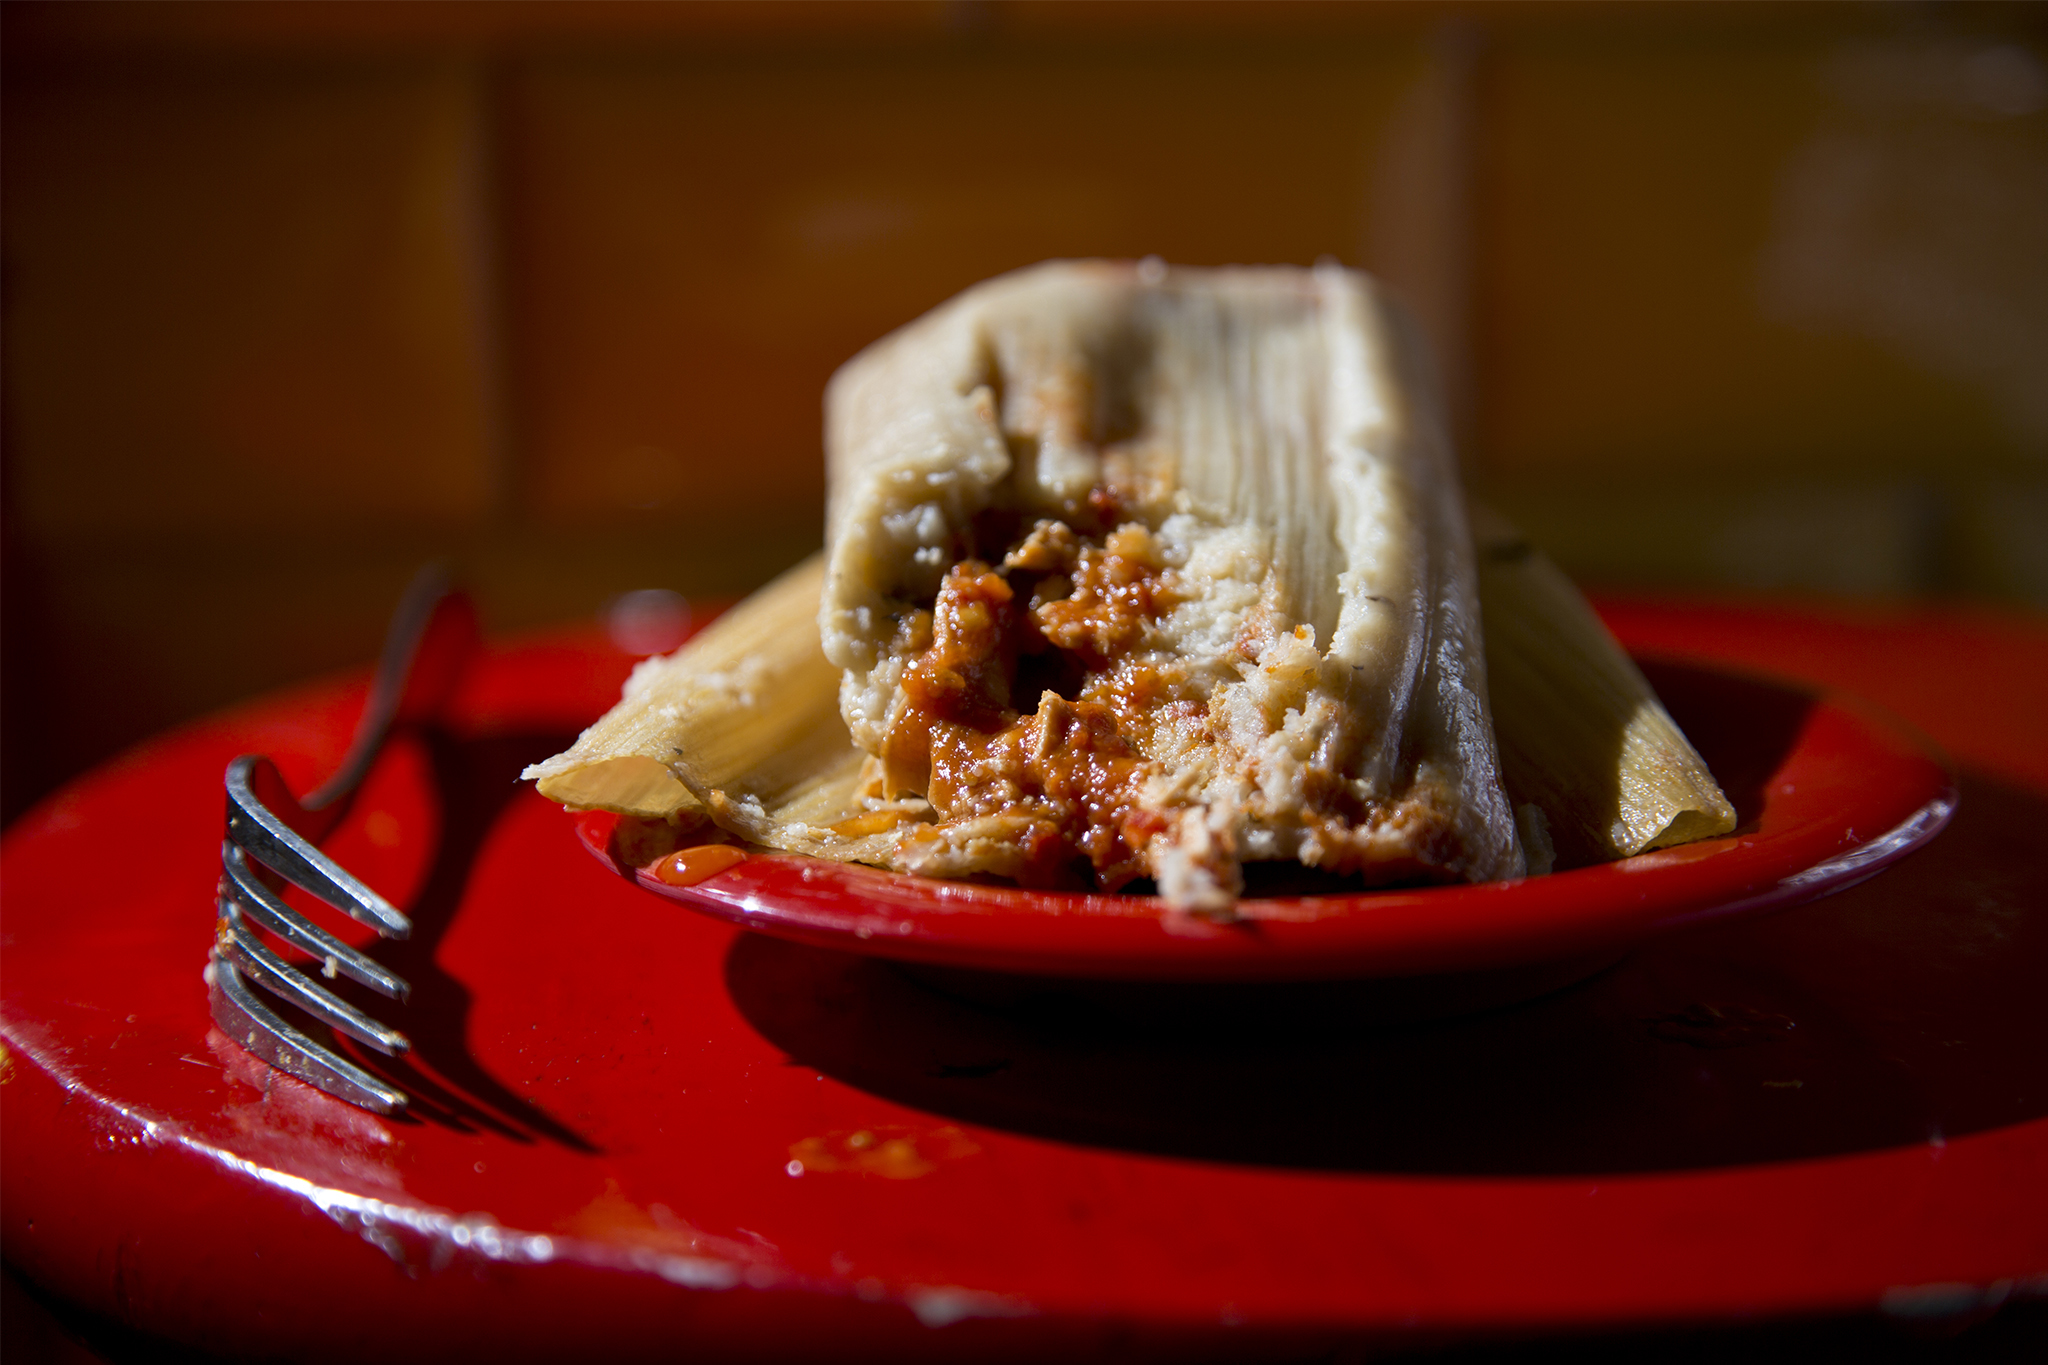 Chipotle Tamale at Tortilleria Nixtamal